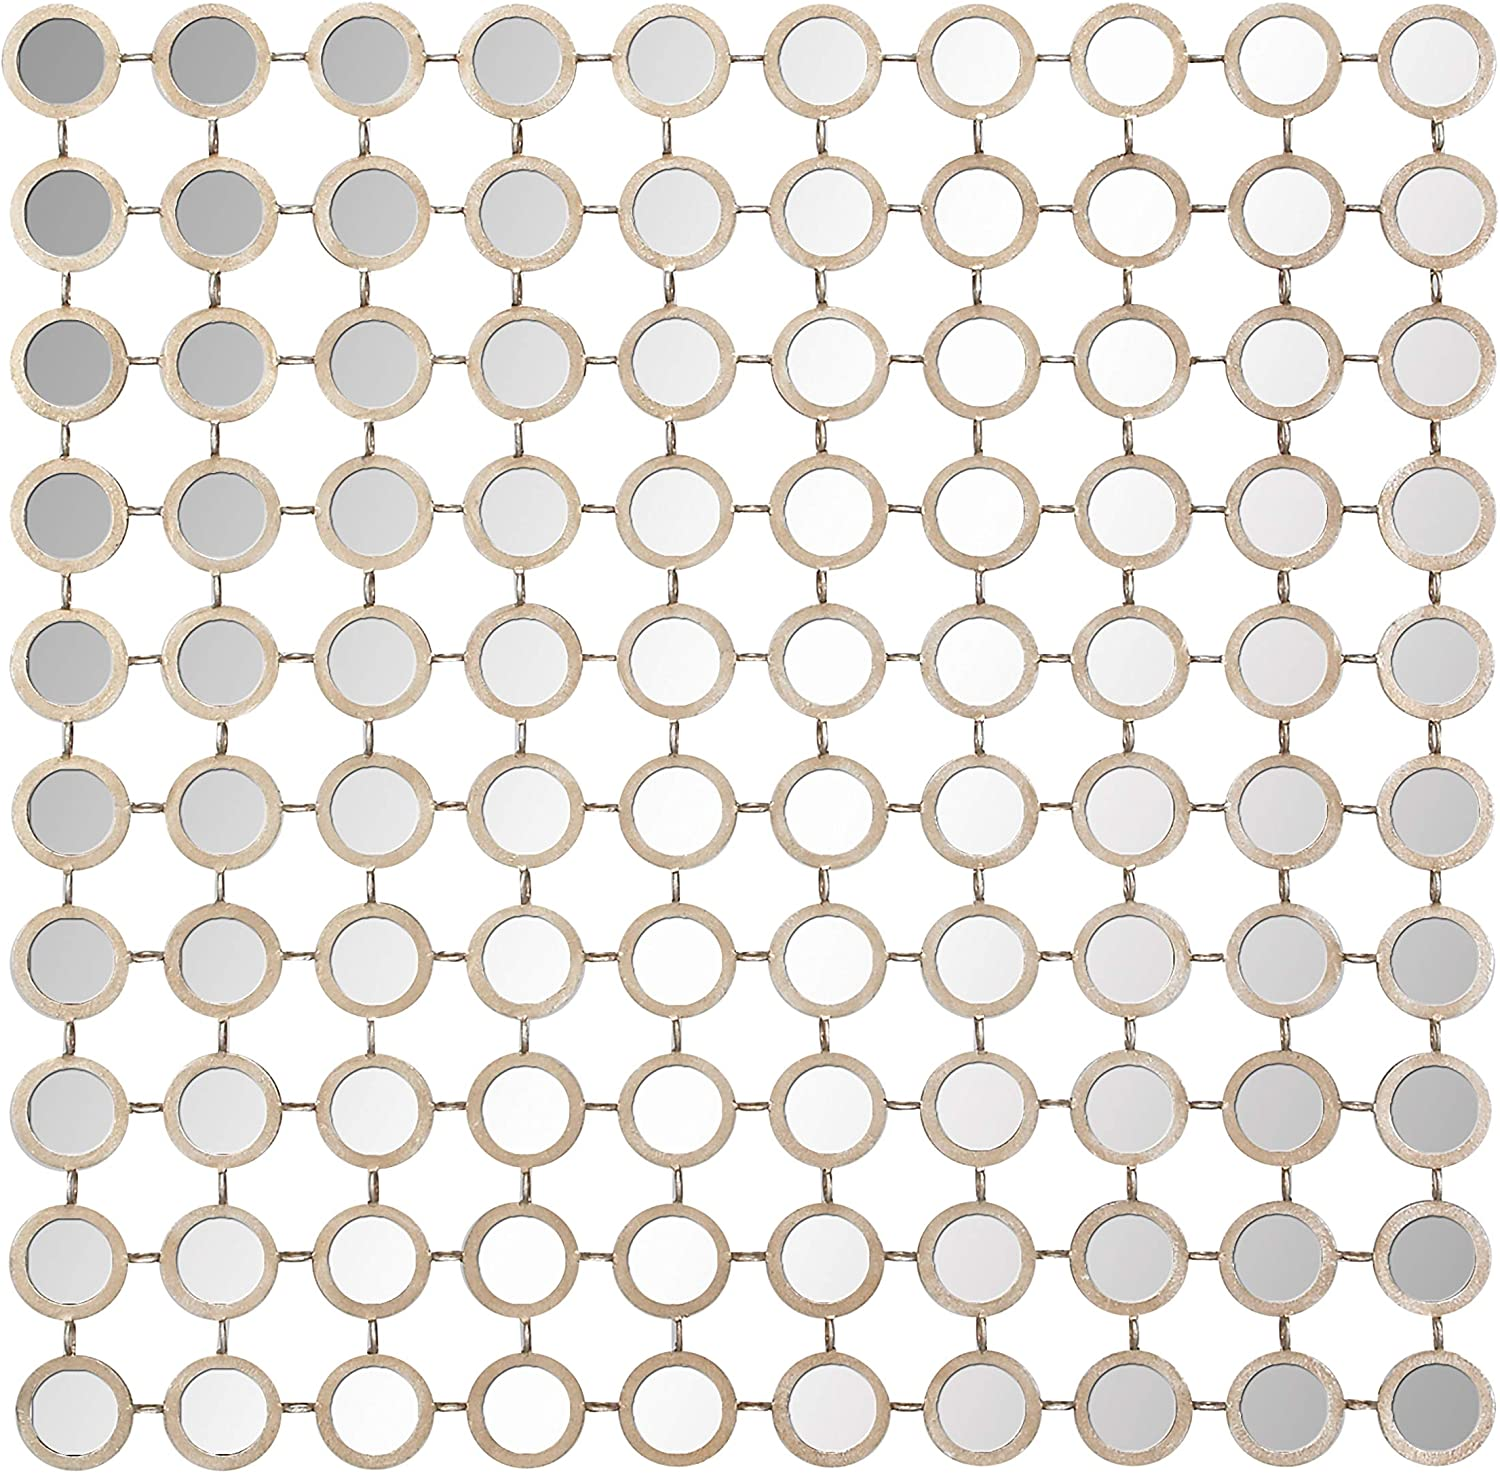 """Deco 79 64109 Modern Style Large Square Wall Mirror with Round Gold Metal Mirror Grid, Gold Mirror Wall Decor, Contemporary Wall Mirror, Accent Decor   39"""" x 39"""", Silver"""